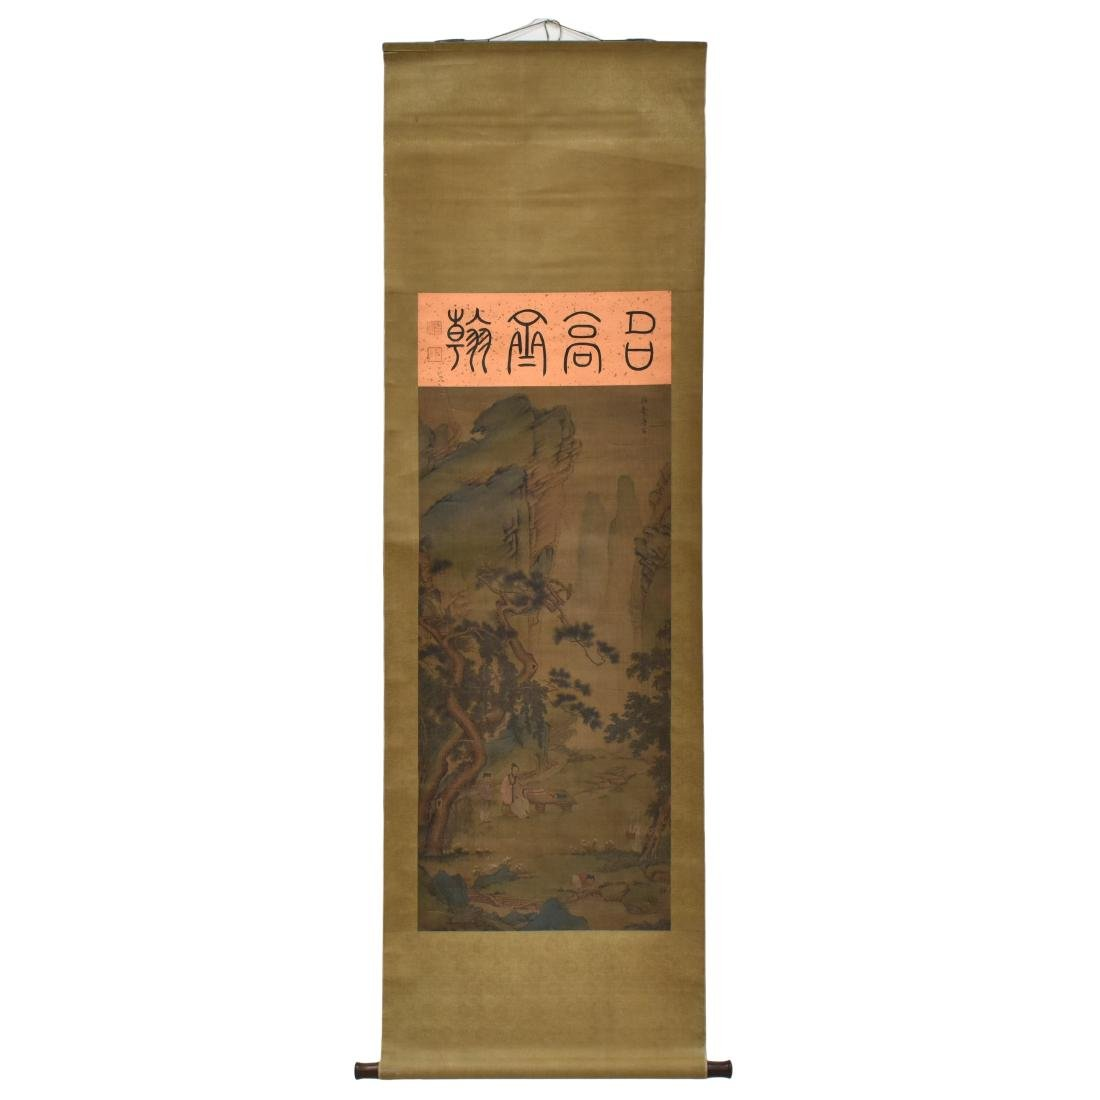 QING DYNASTY MOUNTAINOUS LANDSCAPE SILK SCROLL PAINTING - 2